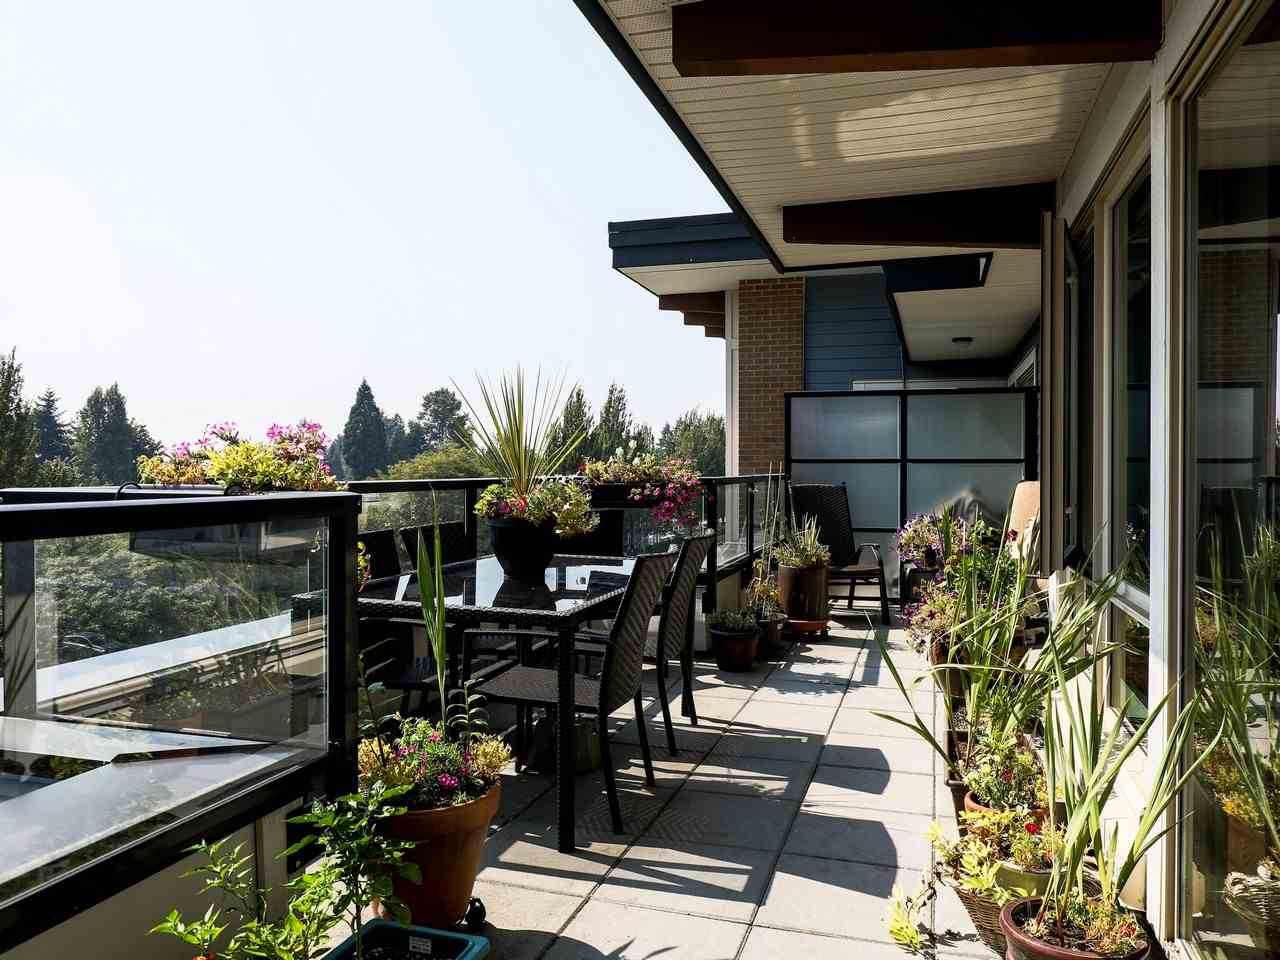 Condo Apartment at 415 1330 MARINE DRIVE, Unit 415, North Vancouver, British Columbia. Image 1